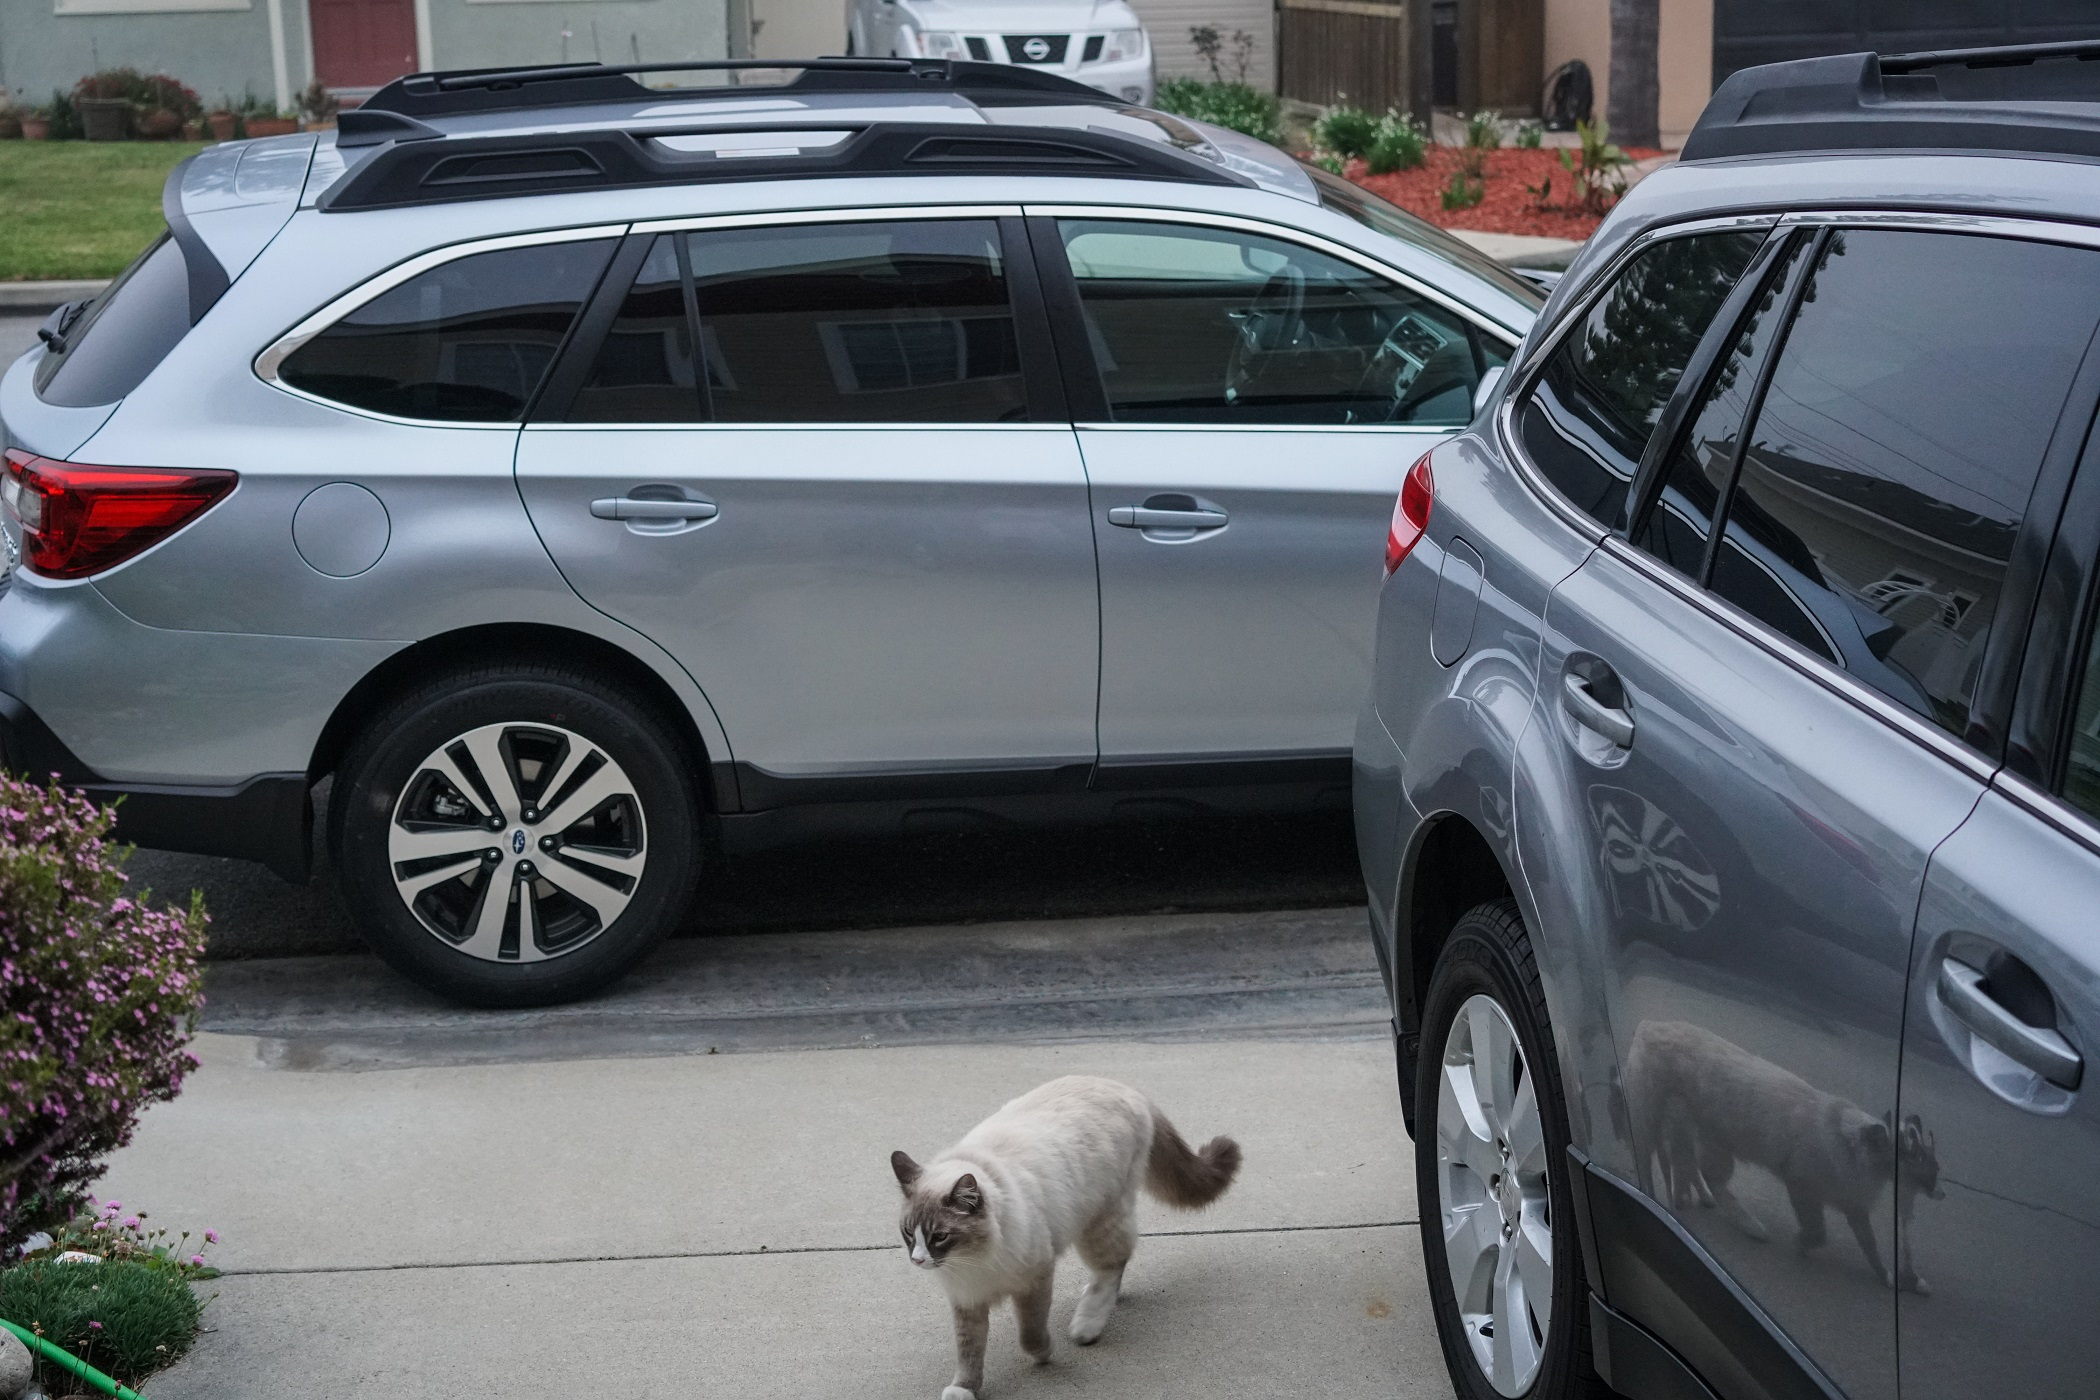 New 2018 Outback 3 6r Purchase Amp Initial Thoughts Subaru